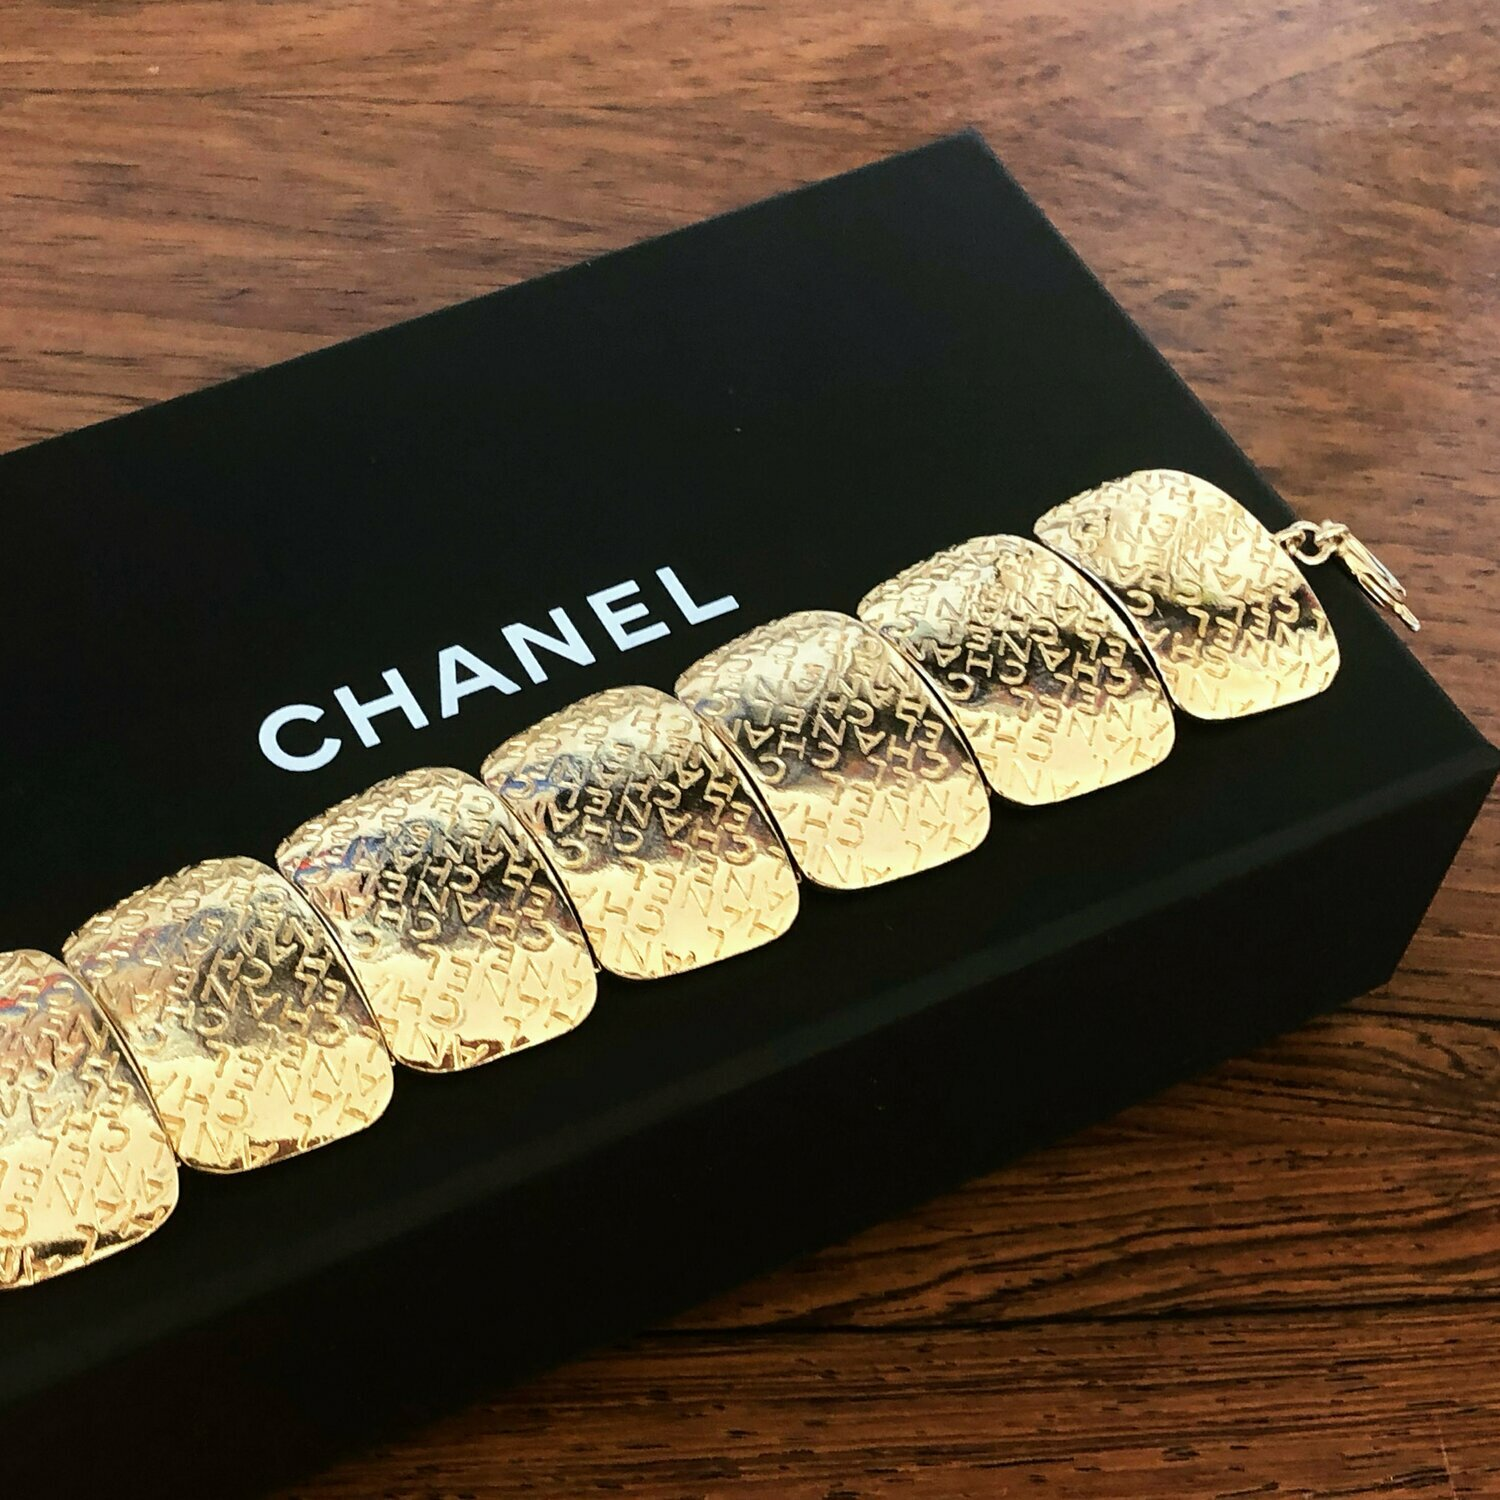 Vintage 90's CHANEL LOGO LETTERS Gold Plated Hinged Charm Bracelet Bangle Cuff Jewelry